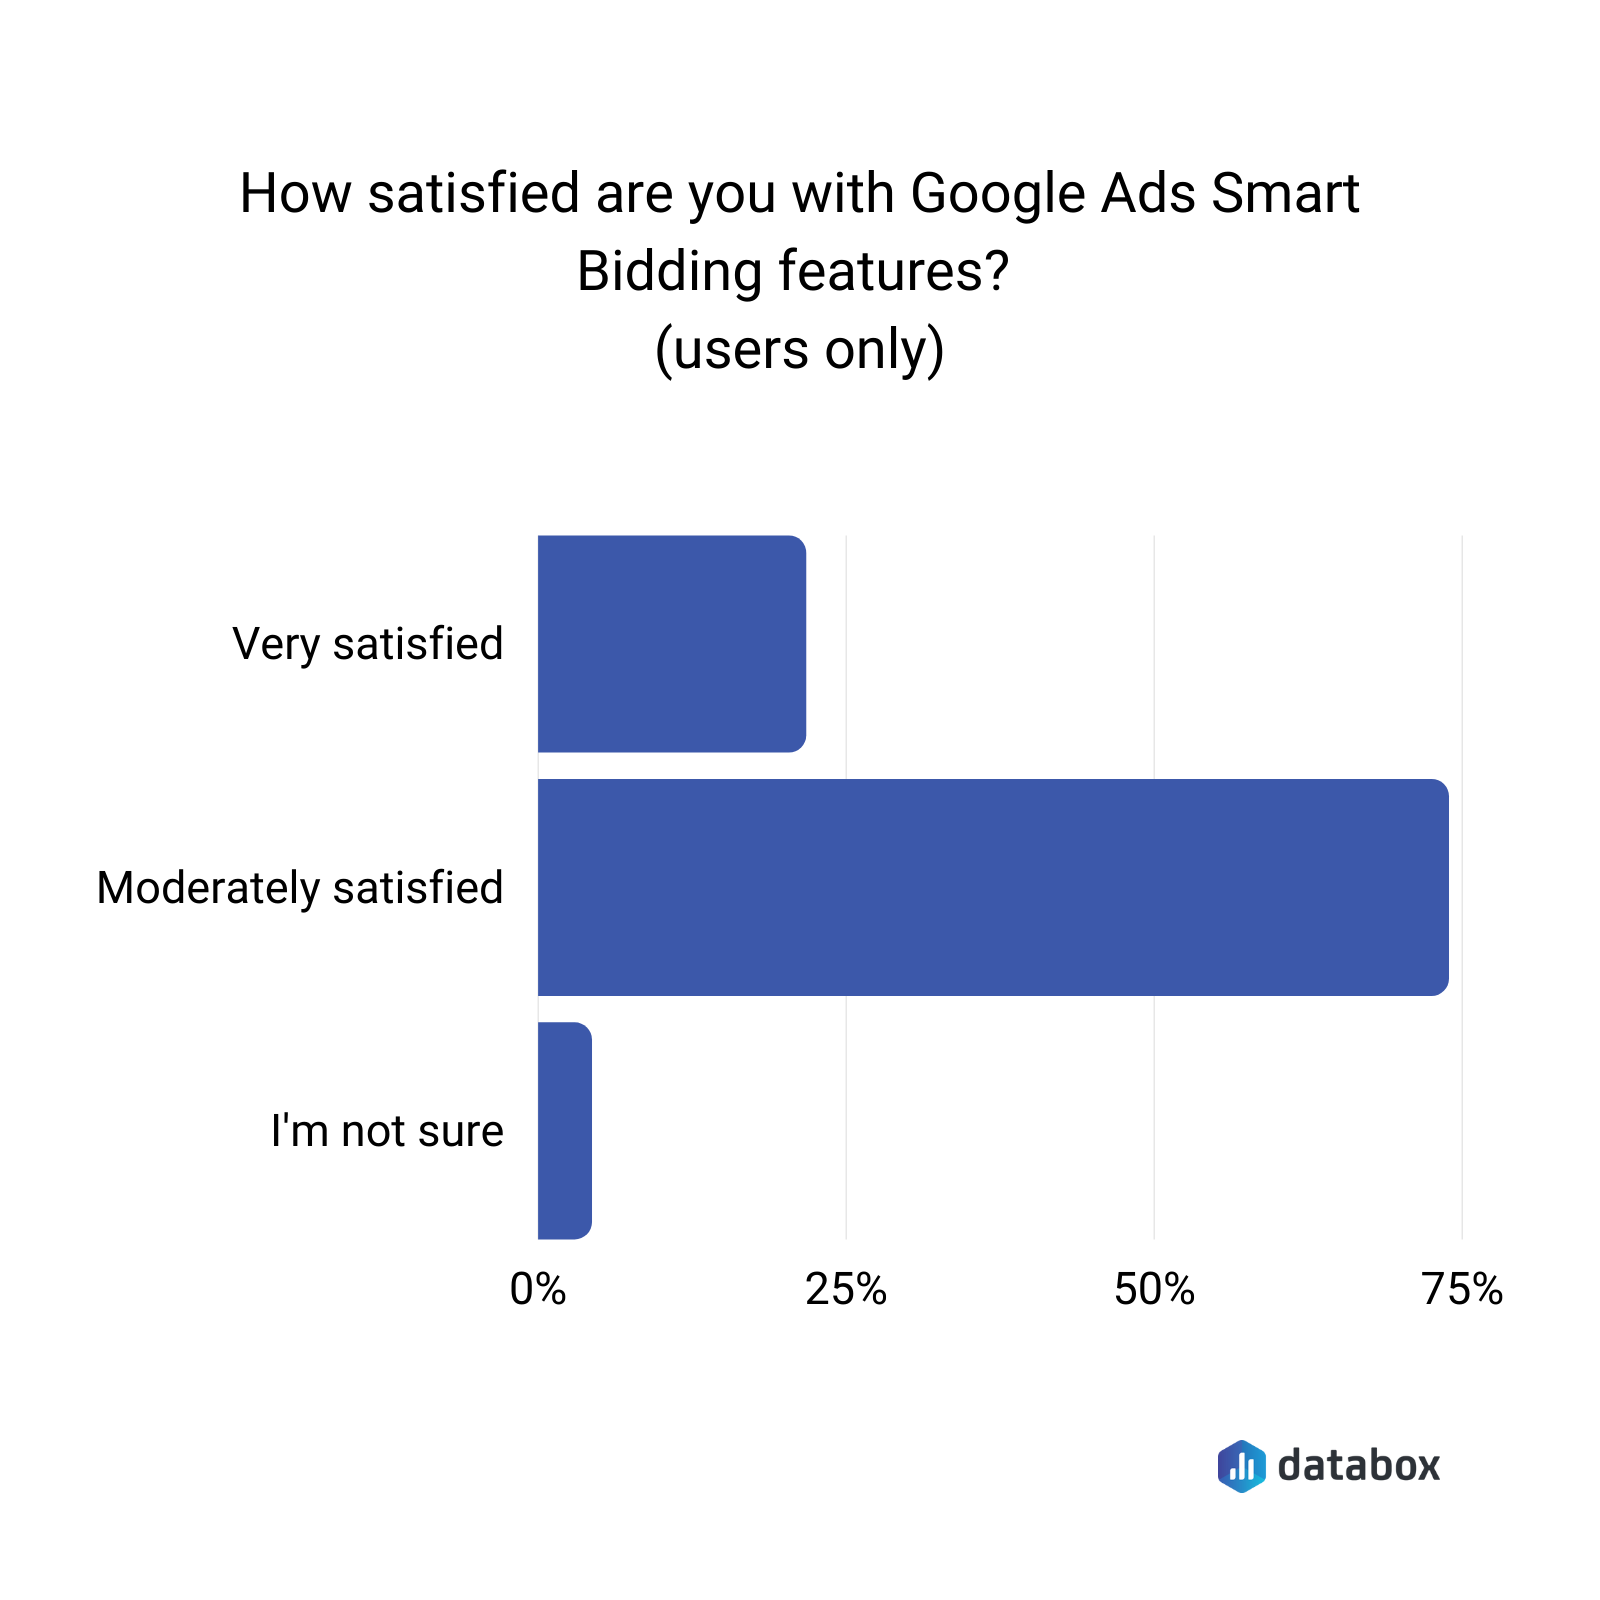 how satisfied are you with google ads smart bidding features?